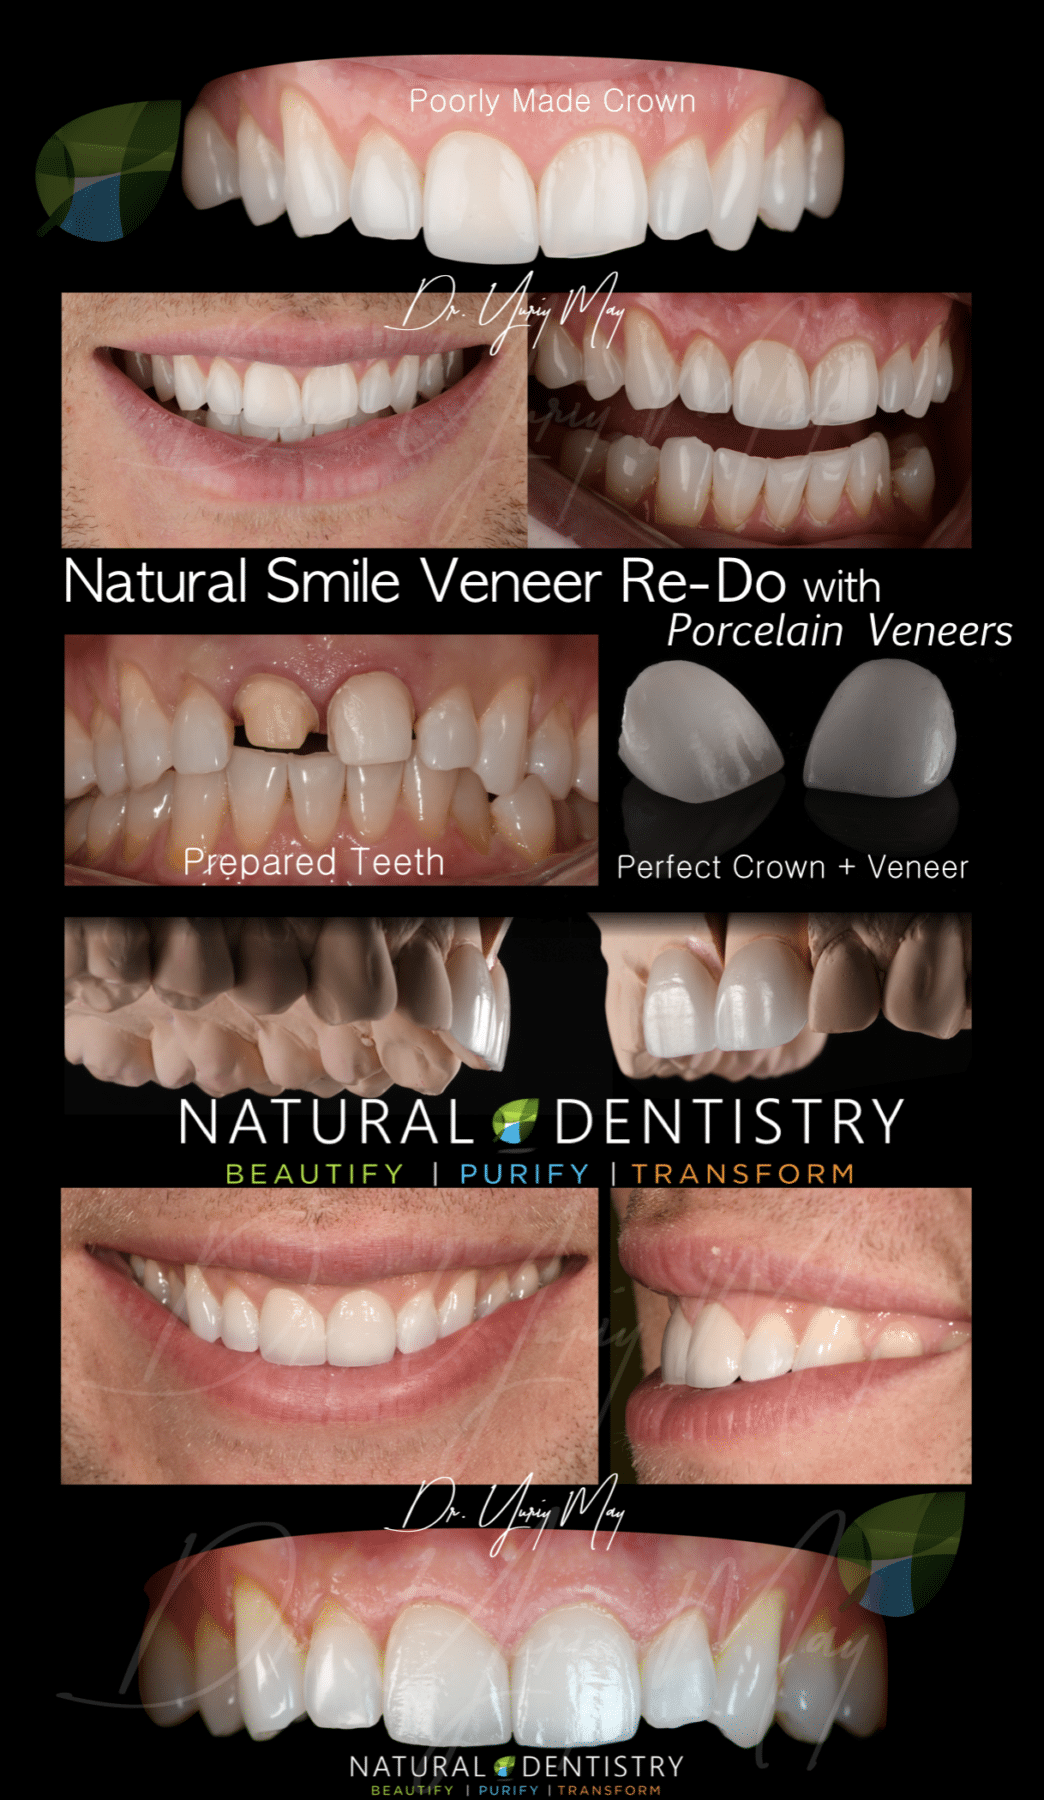 Botched Dental Veneers Re-Do | Top Cosmetic Dentist Smile Makeover Fix Bad Veneers Dr. Yuriy May CT NJ NY MA RI